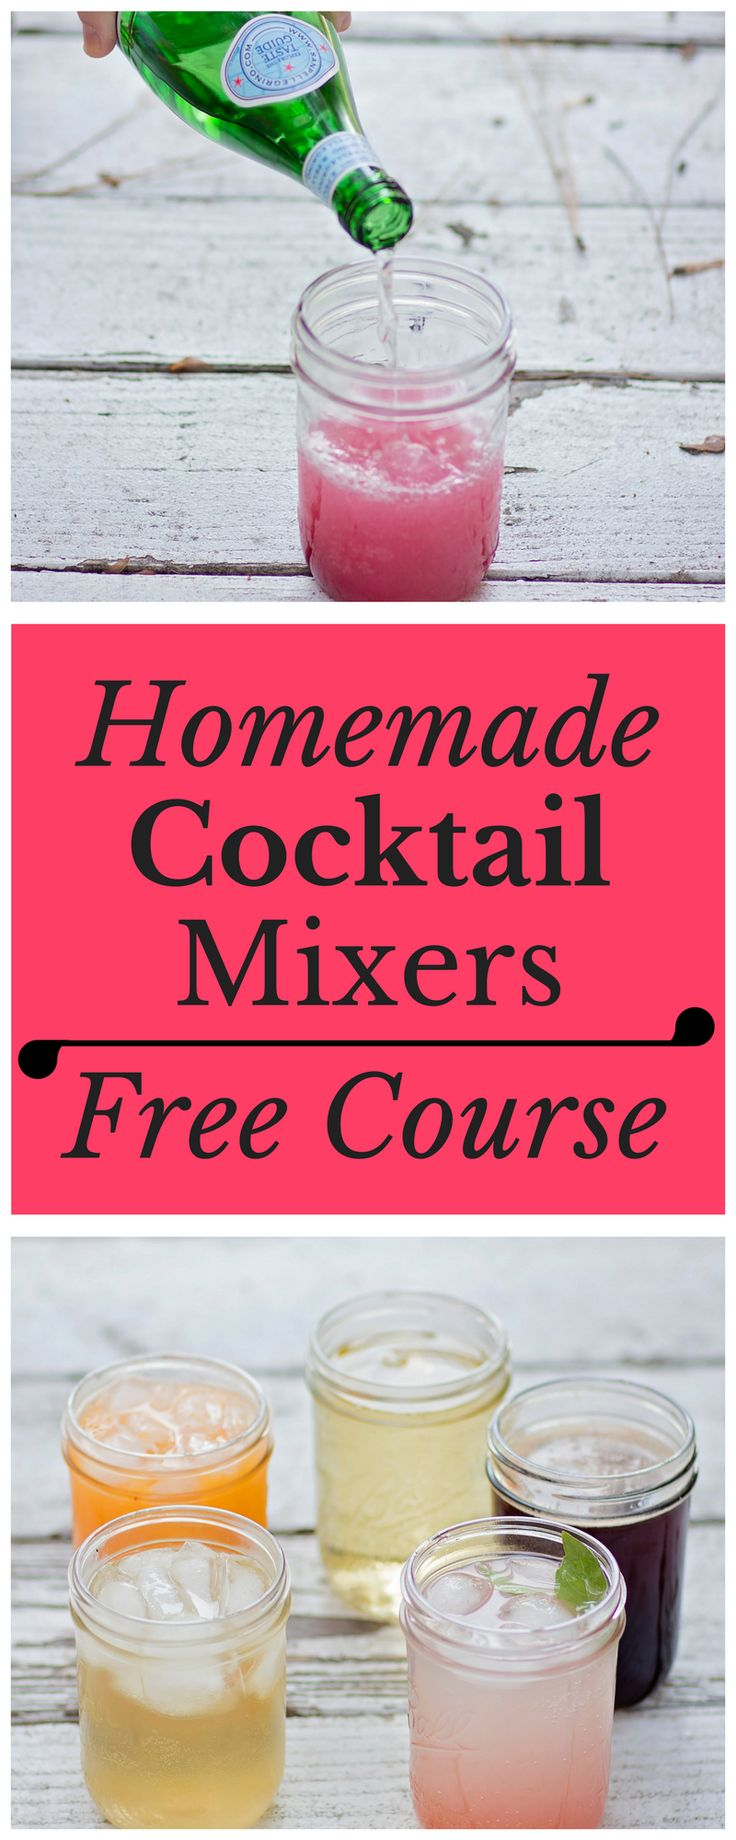 Homemade Cocktail Mixers Free Course   Sign up for the free course that teaches you how to make wholesome, fresh fruit drinks for cocktails and mocktails. You'll never have to serve a boring bottle of red wine that you chose purely because of the label again!